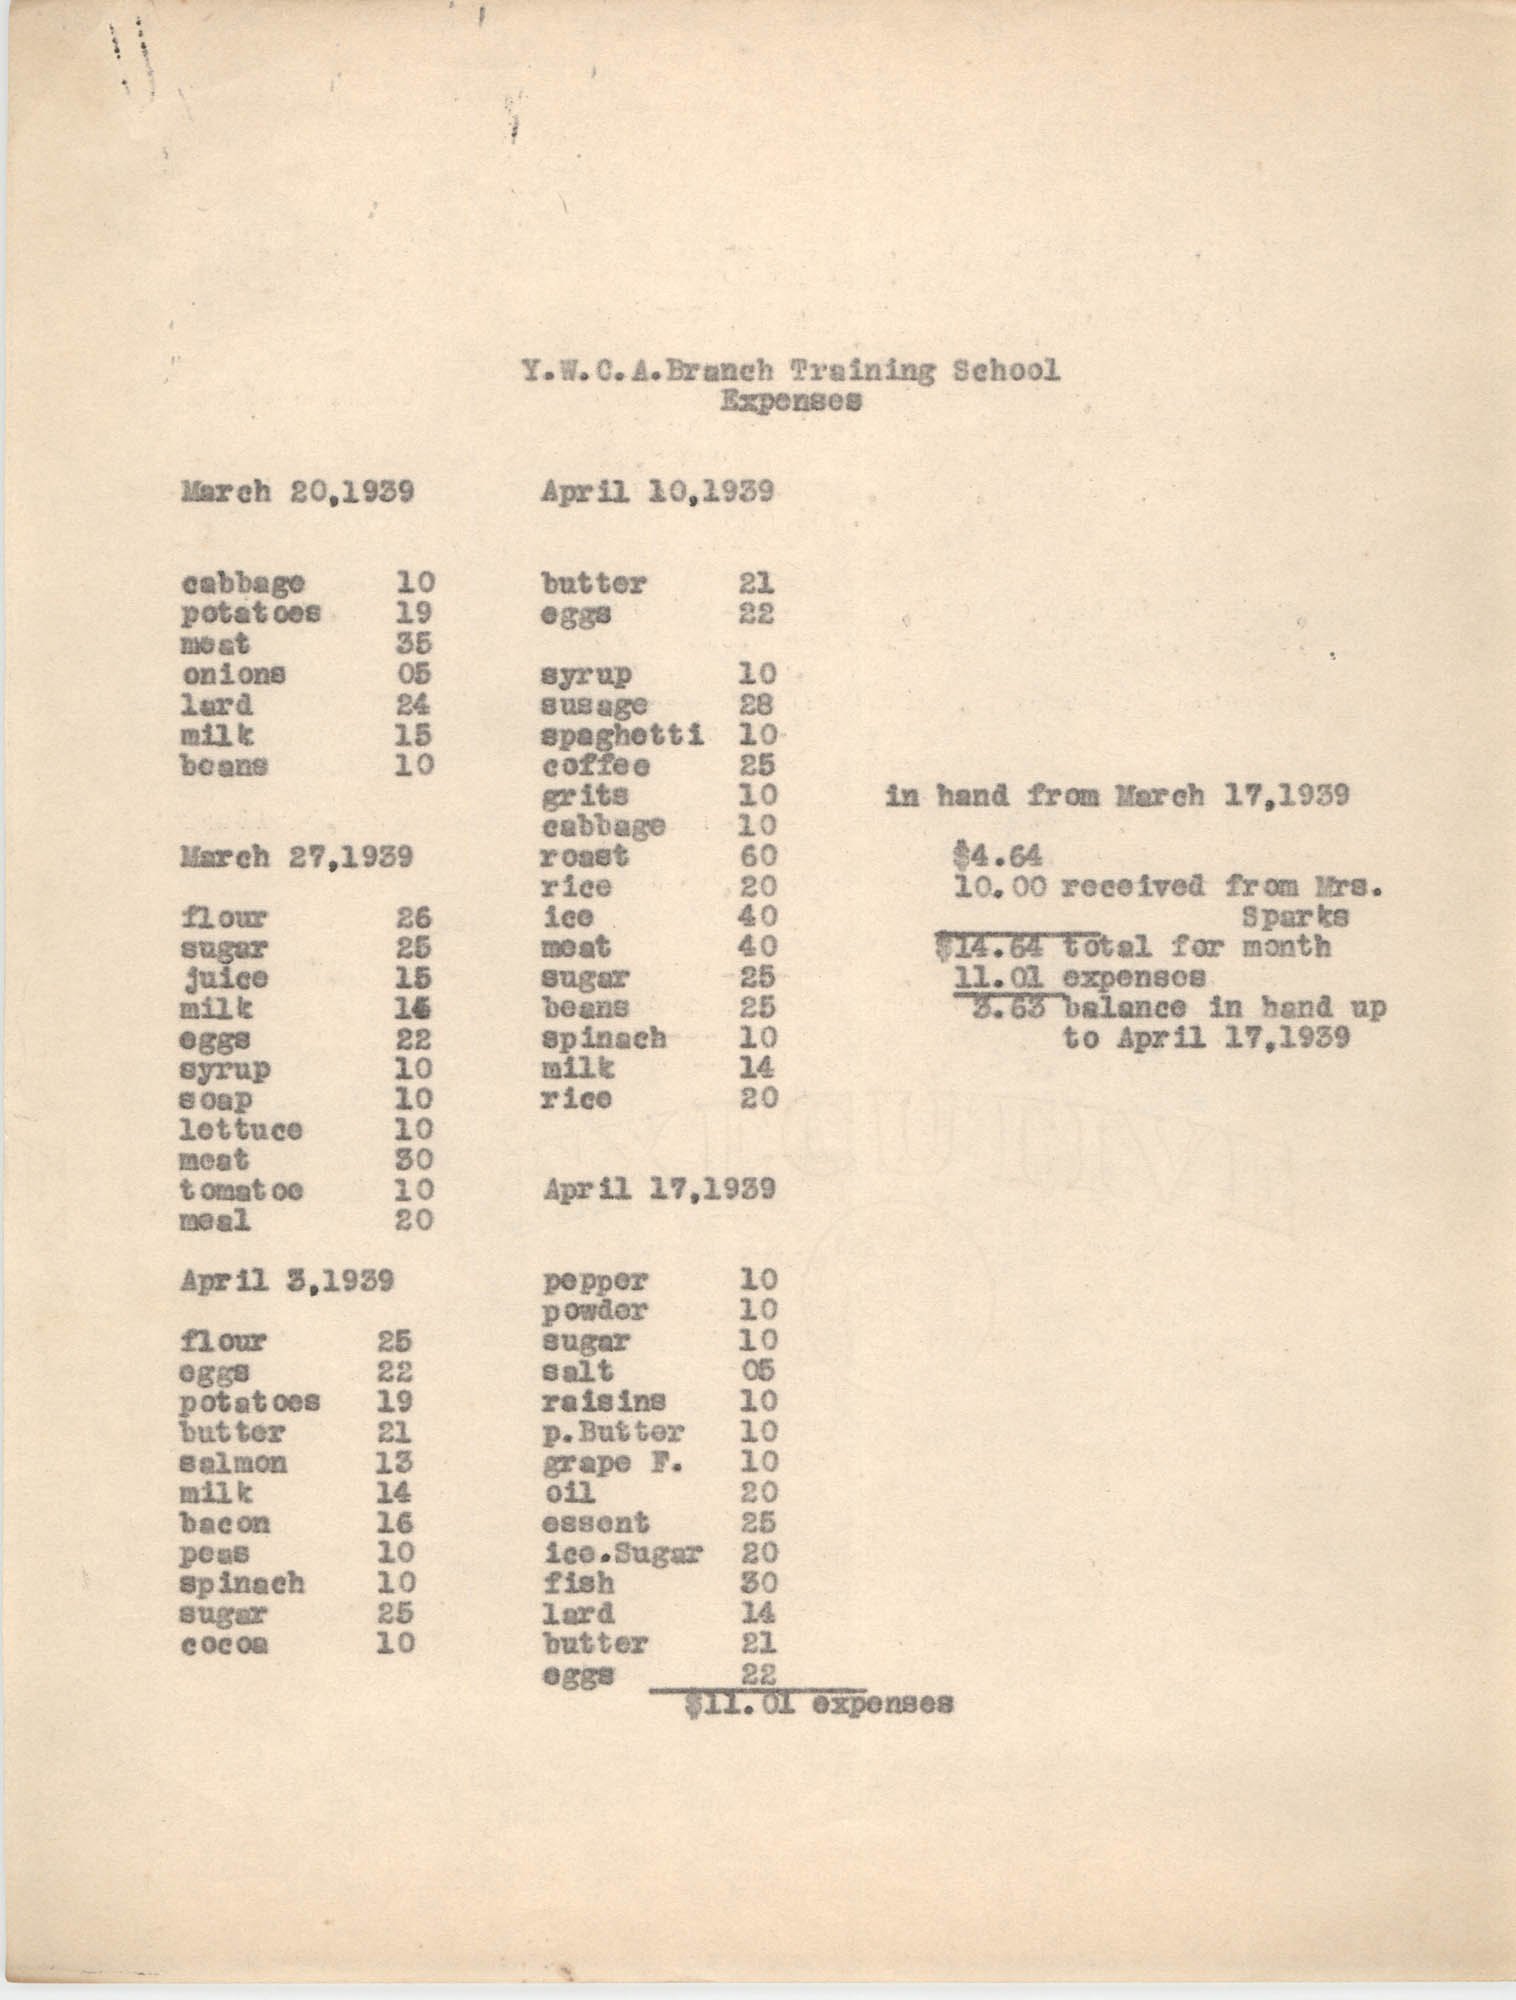 Monthly Report for the Coming Street Y.W.C.A., March 1939, Branch Training School Expenses